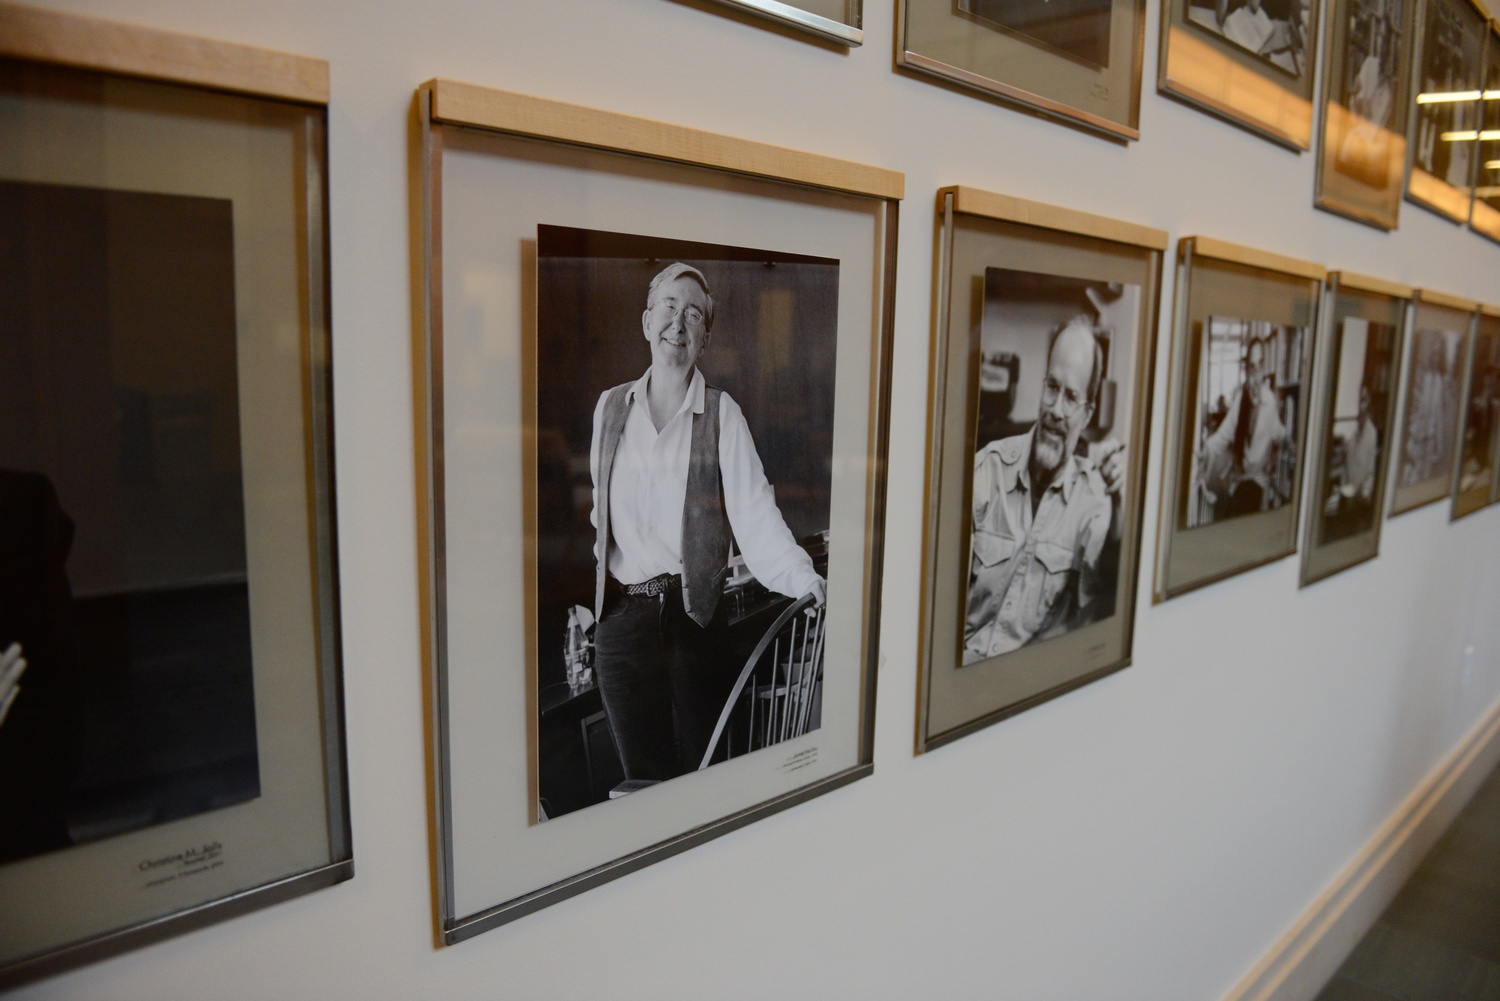 A portrait of Harvard Law School professor Janet E. Halley hangs in Wasserstein Hall next to images of other faculty members.